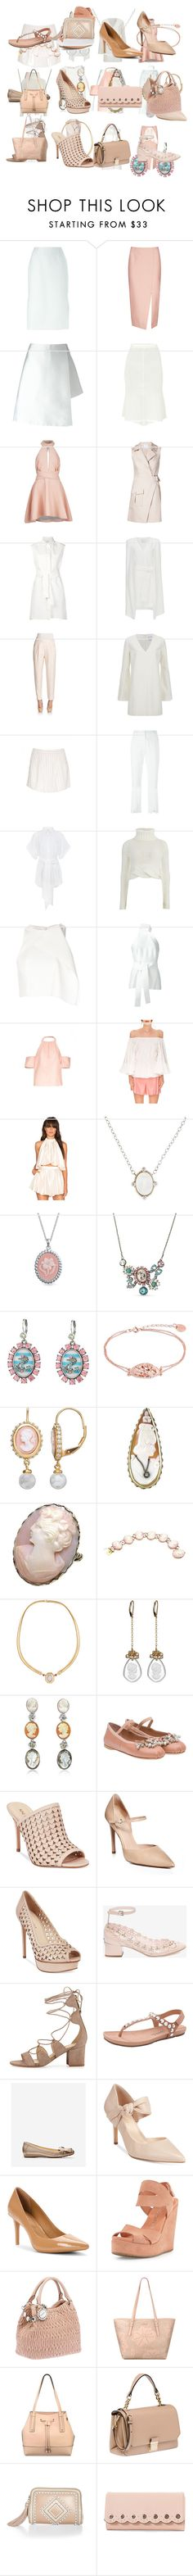 """""""Untitled #3686"""" by luciana-boneca on Polyvore featuring C/MEO COLLECTIVE, Cameo, Bling Jewelry, Betsey Johnson, Alex Monroe, SOPHIE MILLER, Vans, Sophia & Chloe, Mia & Beverly and Miu Miu"""